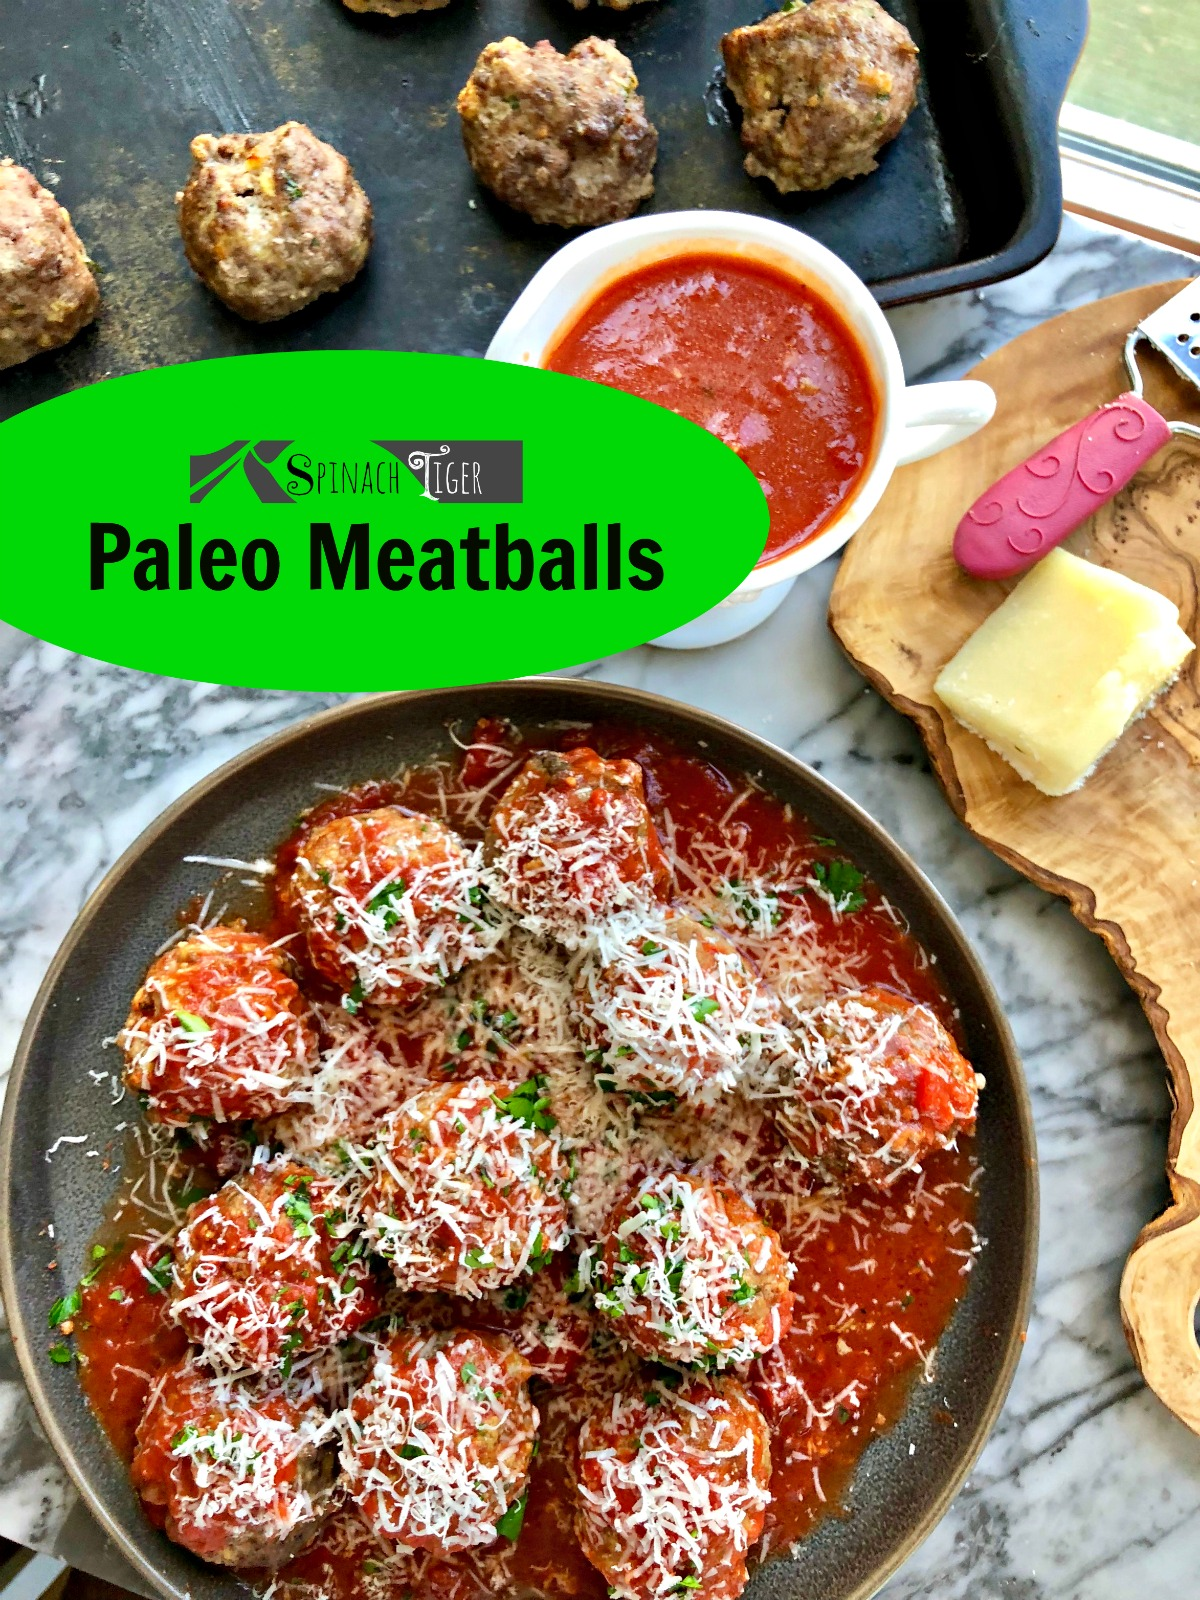 Paleo Meatballs for a grain free, keto friendly dinner. Also loves mozzarella and ricotta cheese. #paleomeatballs #ketomeatballs #spinchtiger via @angelaroberts